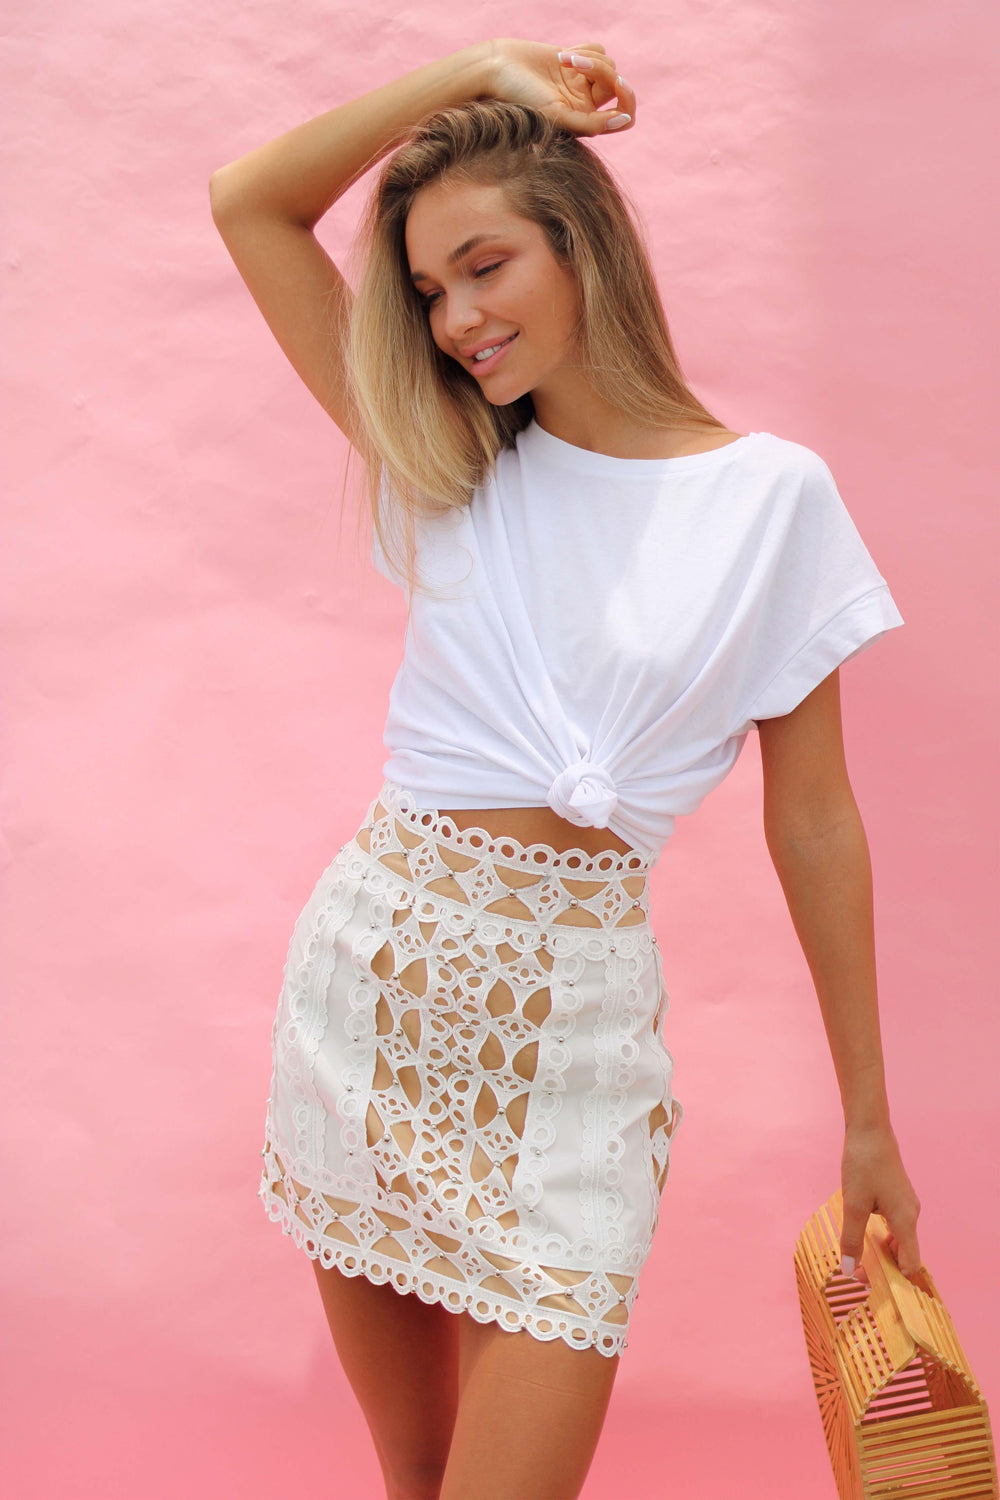 AYA SKIRT IN WHITE - Chic Le Frique